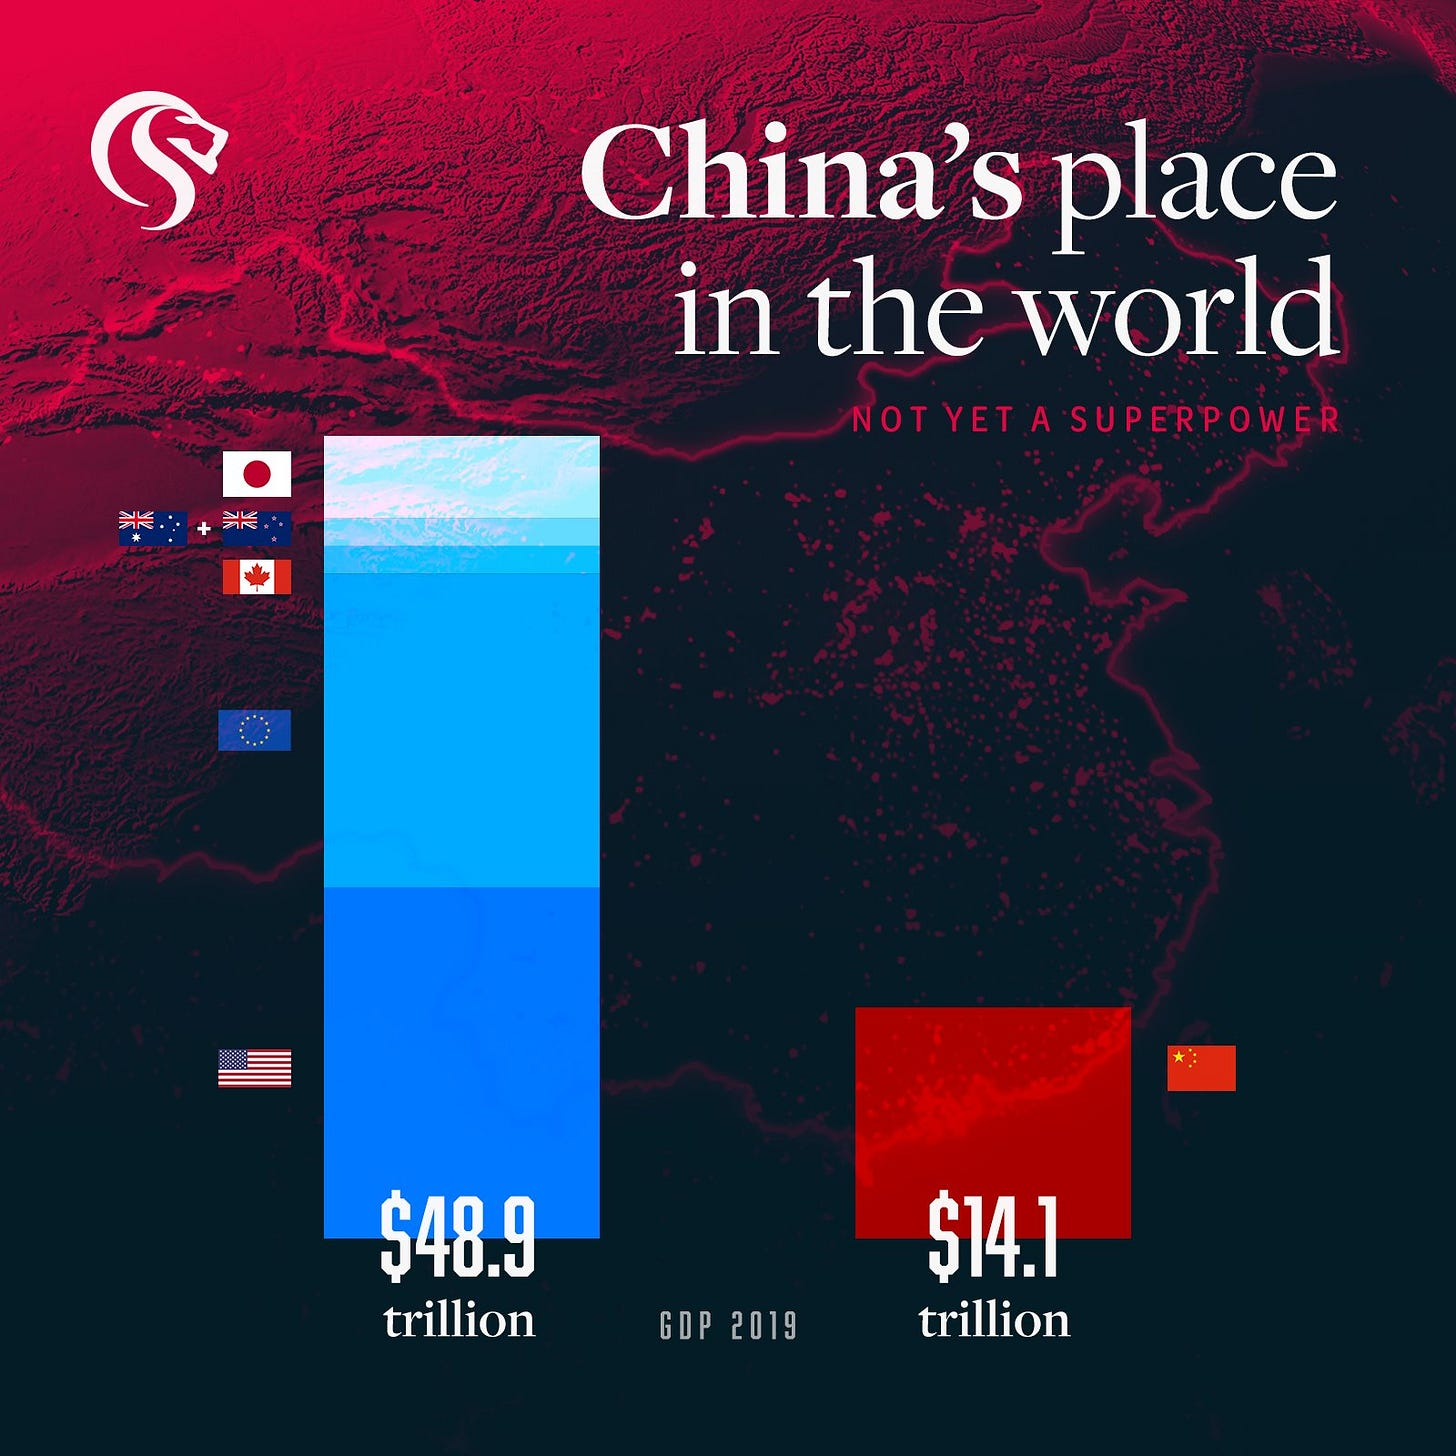 May be an image of text that says 'S China's place in the world NOT YET A SUPERPOWER 0 $48 q 040.0 trillion GDP 2019 $14.1 trillion'